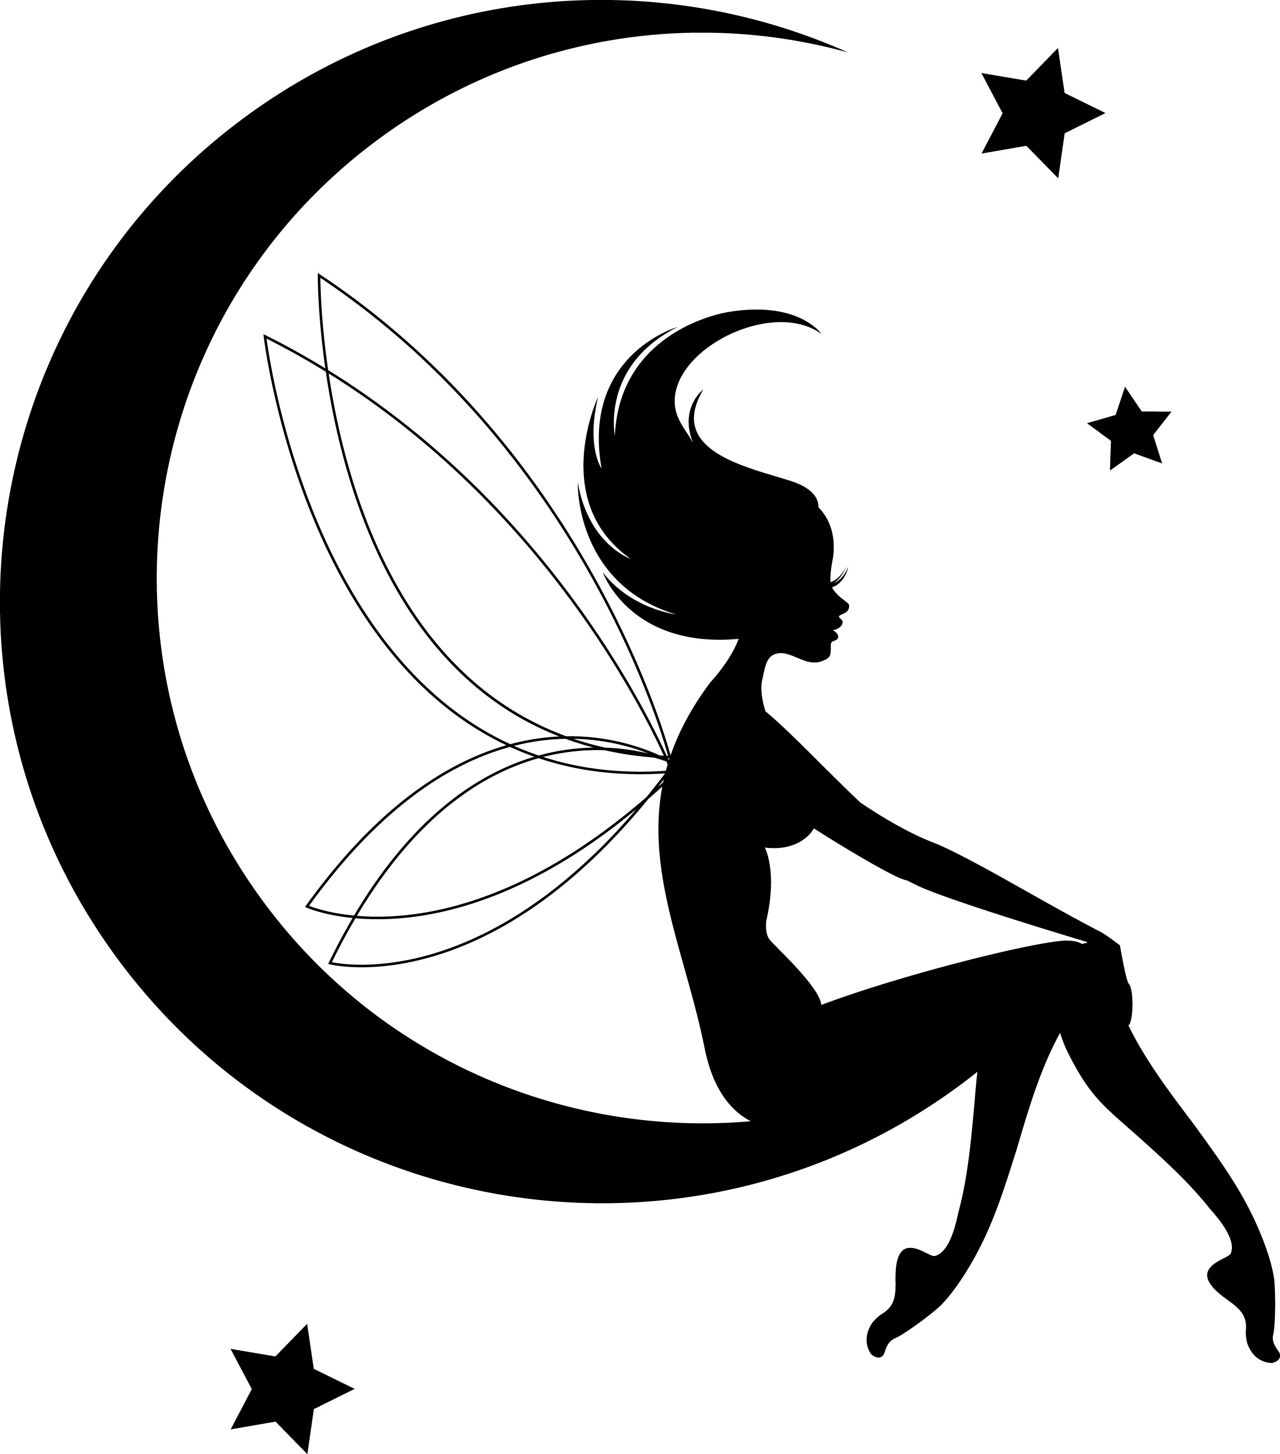 1280x1454 A Dash Of Pixie Dust Are Fairies Real Or Mythical Creatures